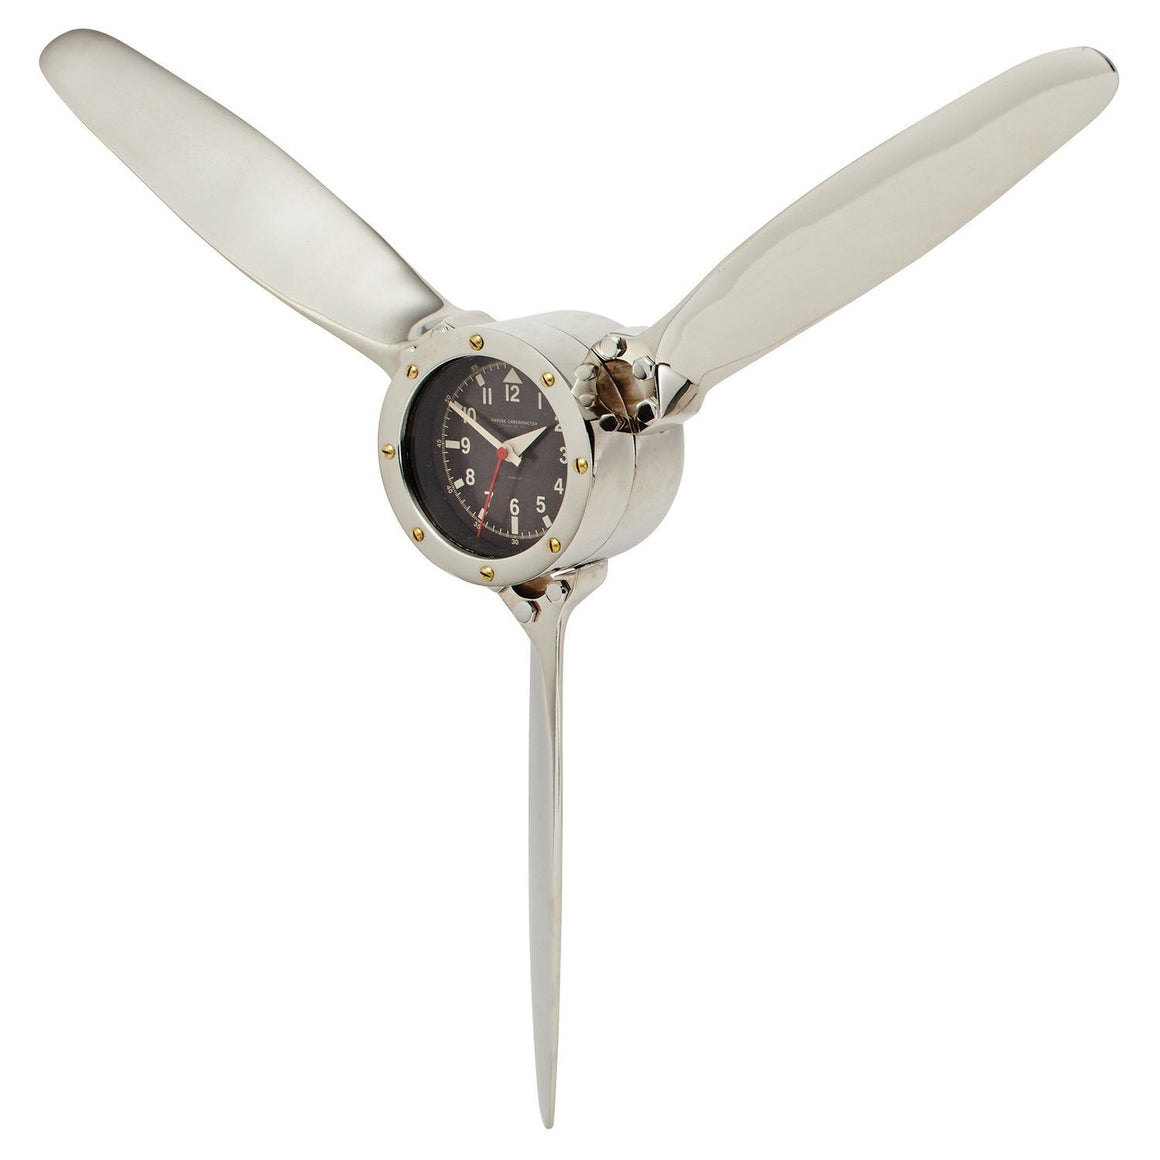 Propeller Wall Clock - Polished Aluminum - Aviator - Machine Age Clock Pendulux